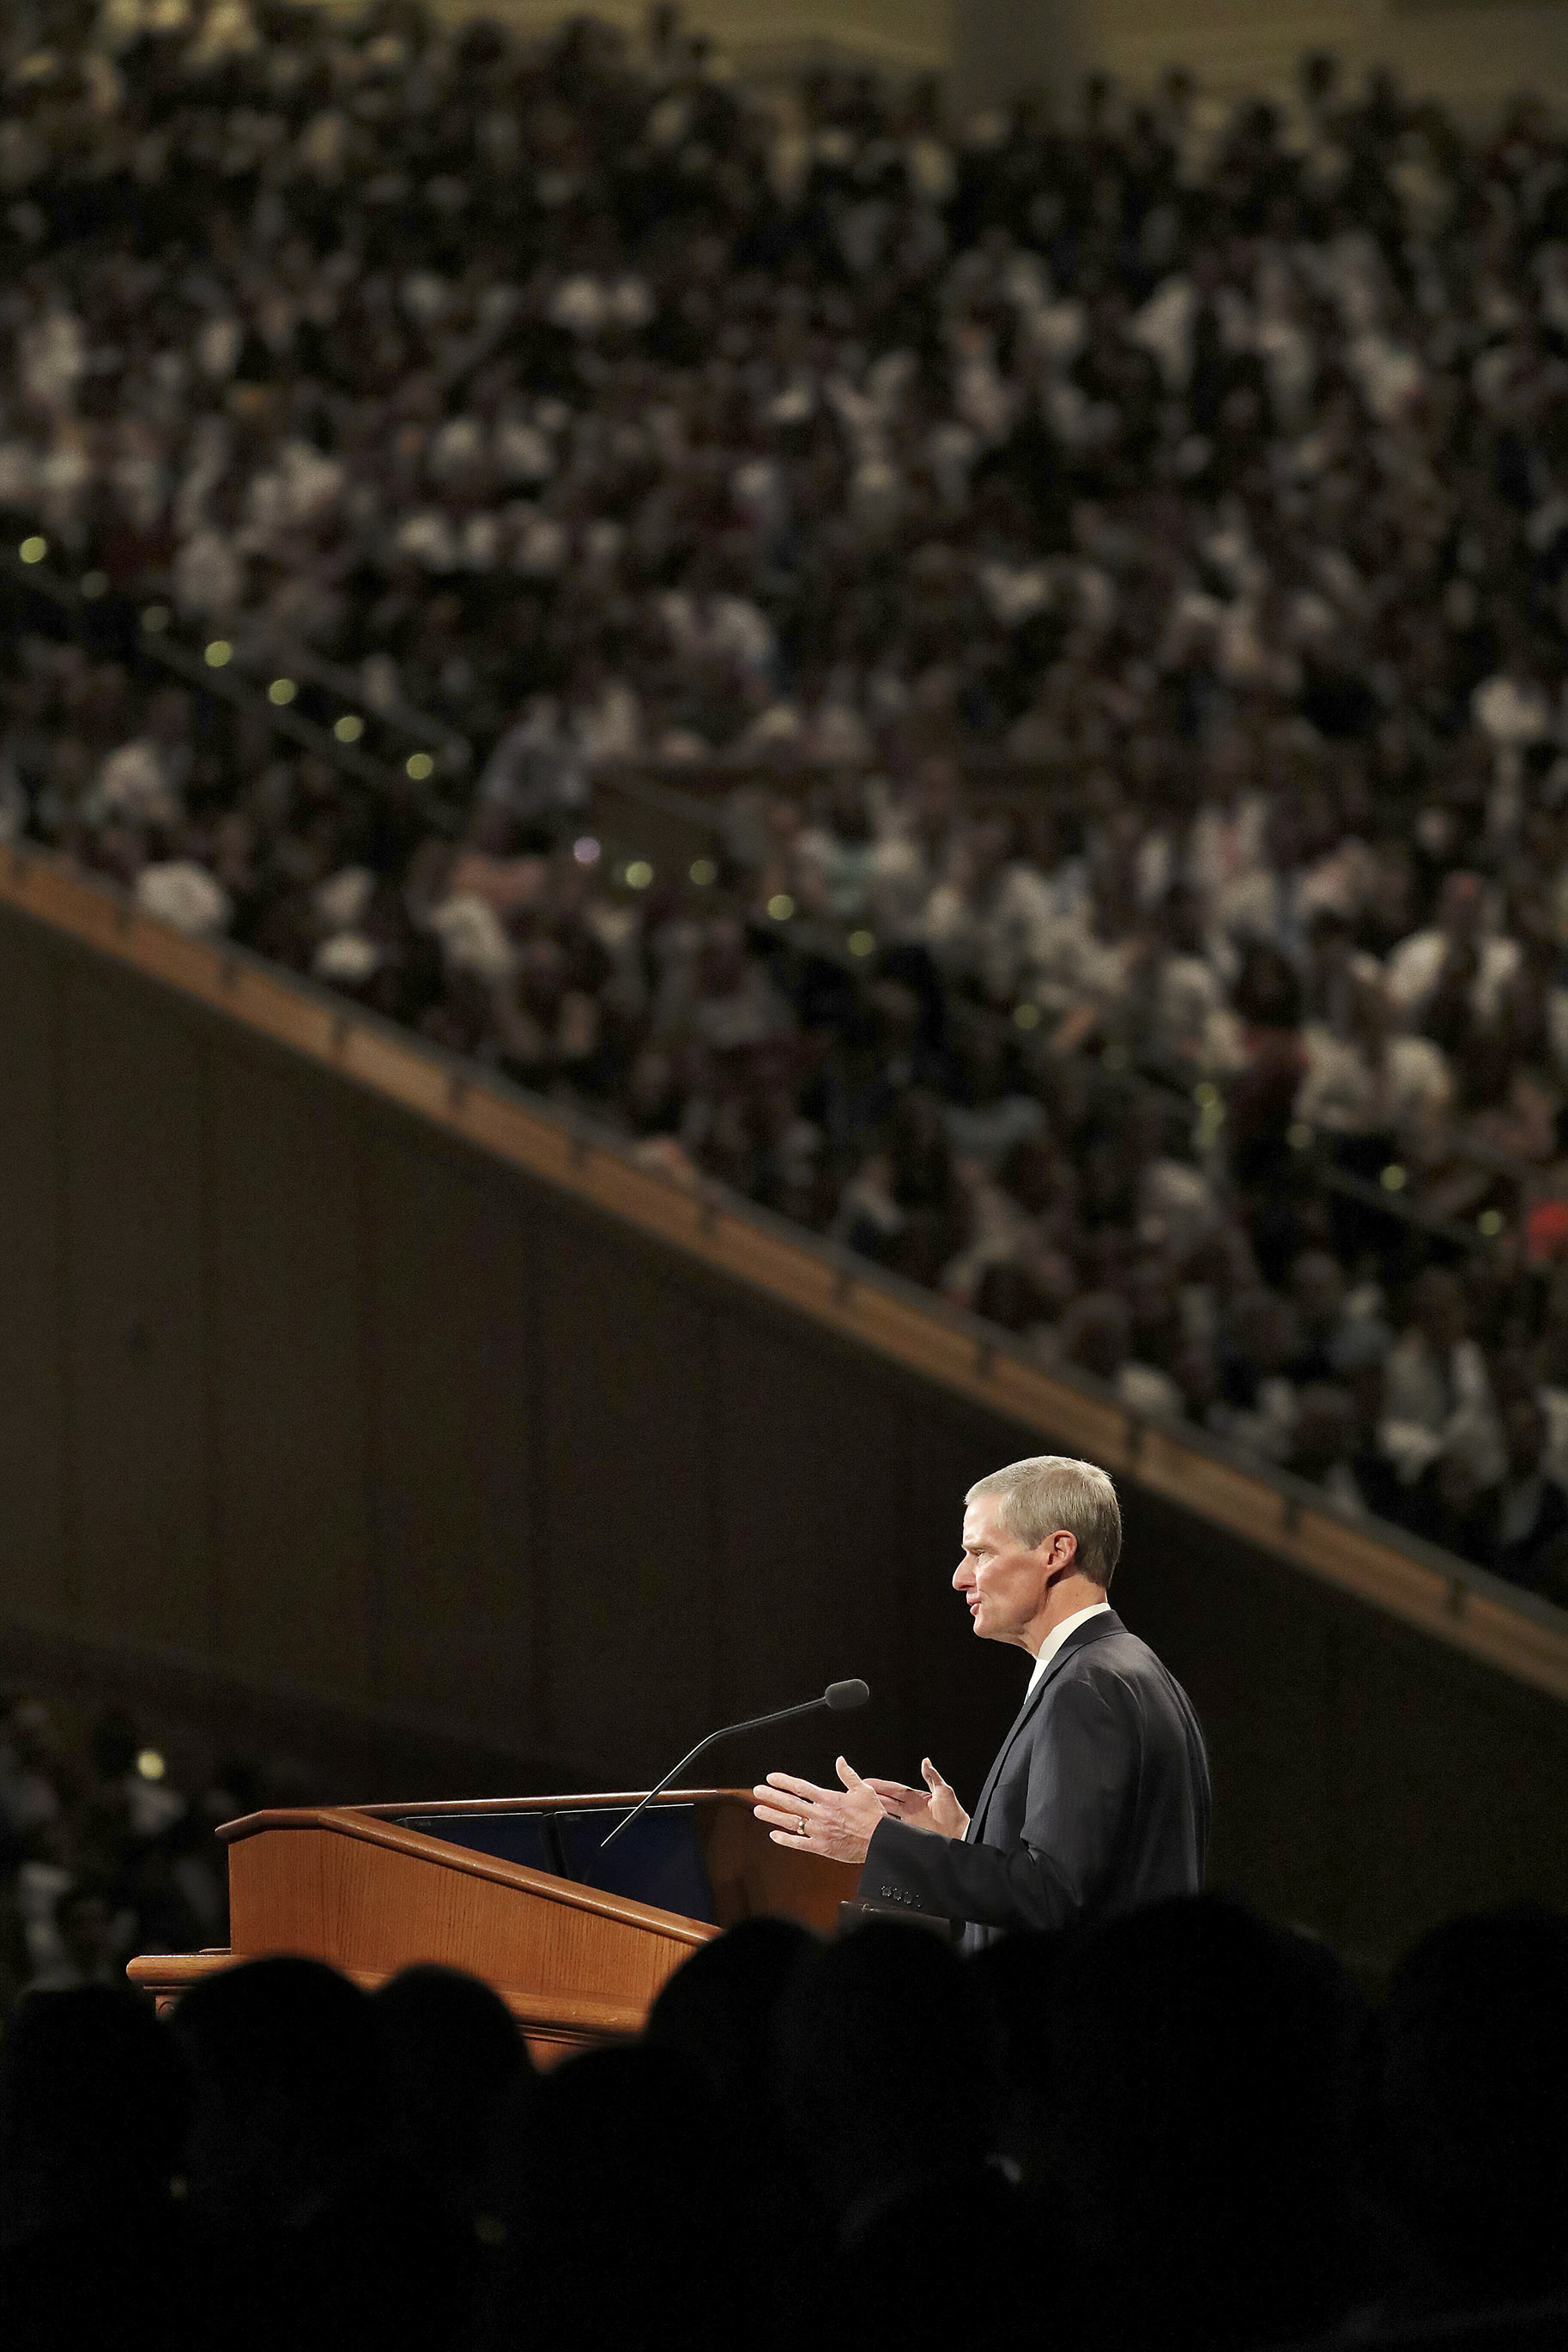 Elder David A. Bednar, of the Quorum of the Twelve Apostles of The Church of Jesus Christ of Latter-day Saints, speaks during a fireside at BYU Idaho in Rexburg on Sunday, Sept. 22, 2019.